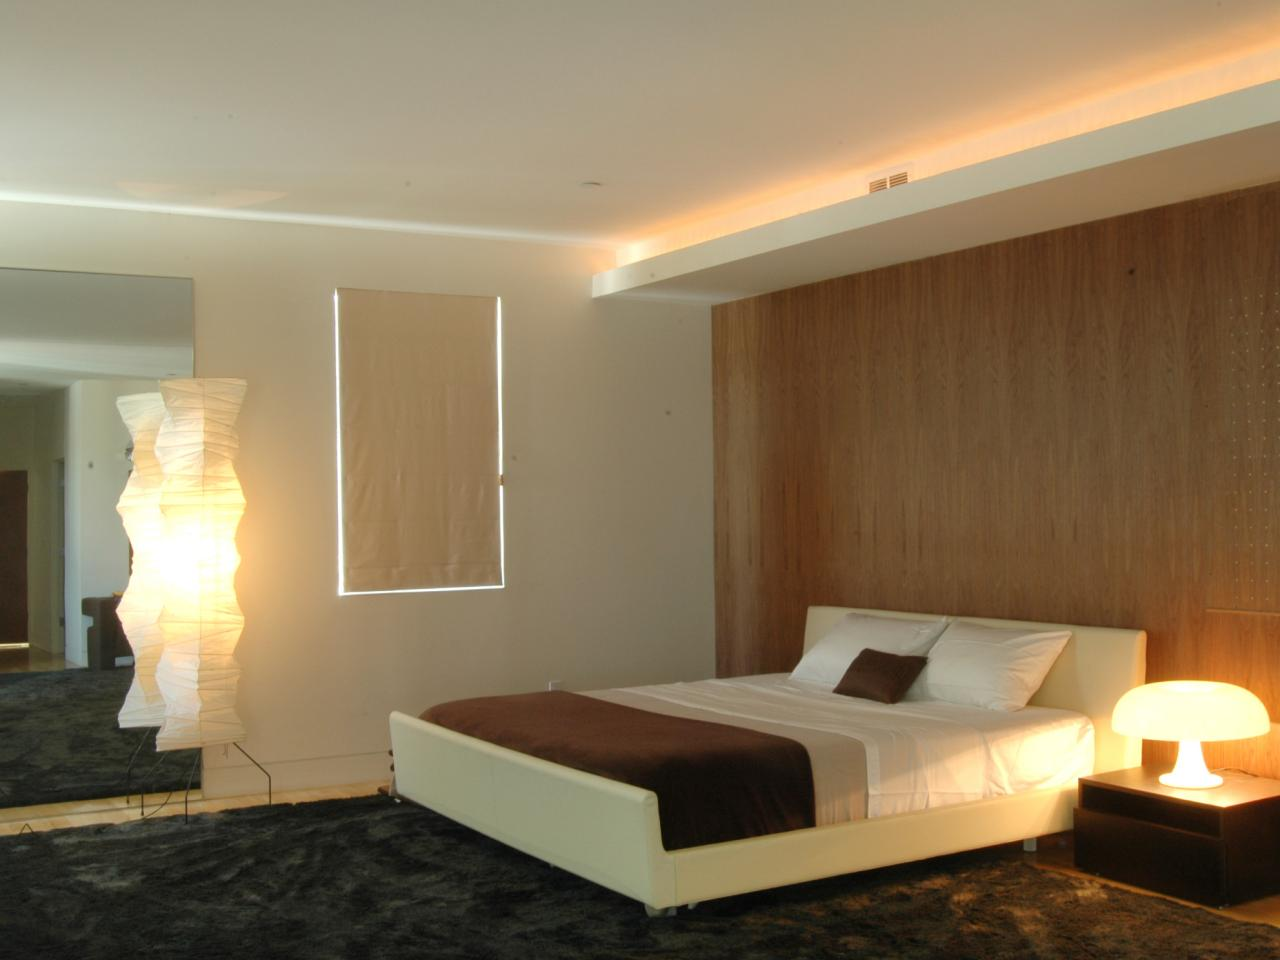 Pendant Lighting. Modern Bedroom Lighting   HGTV